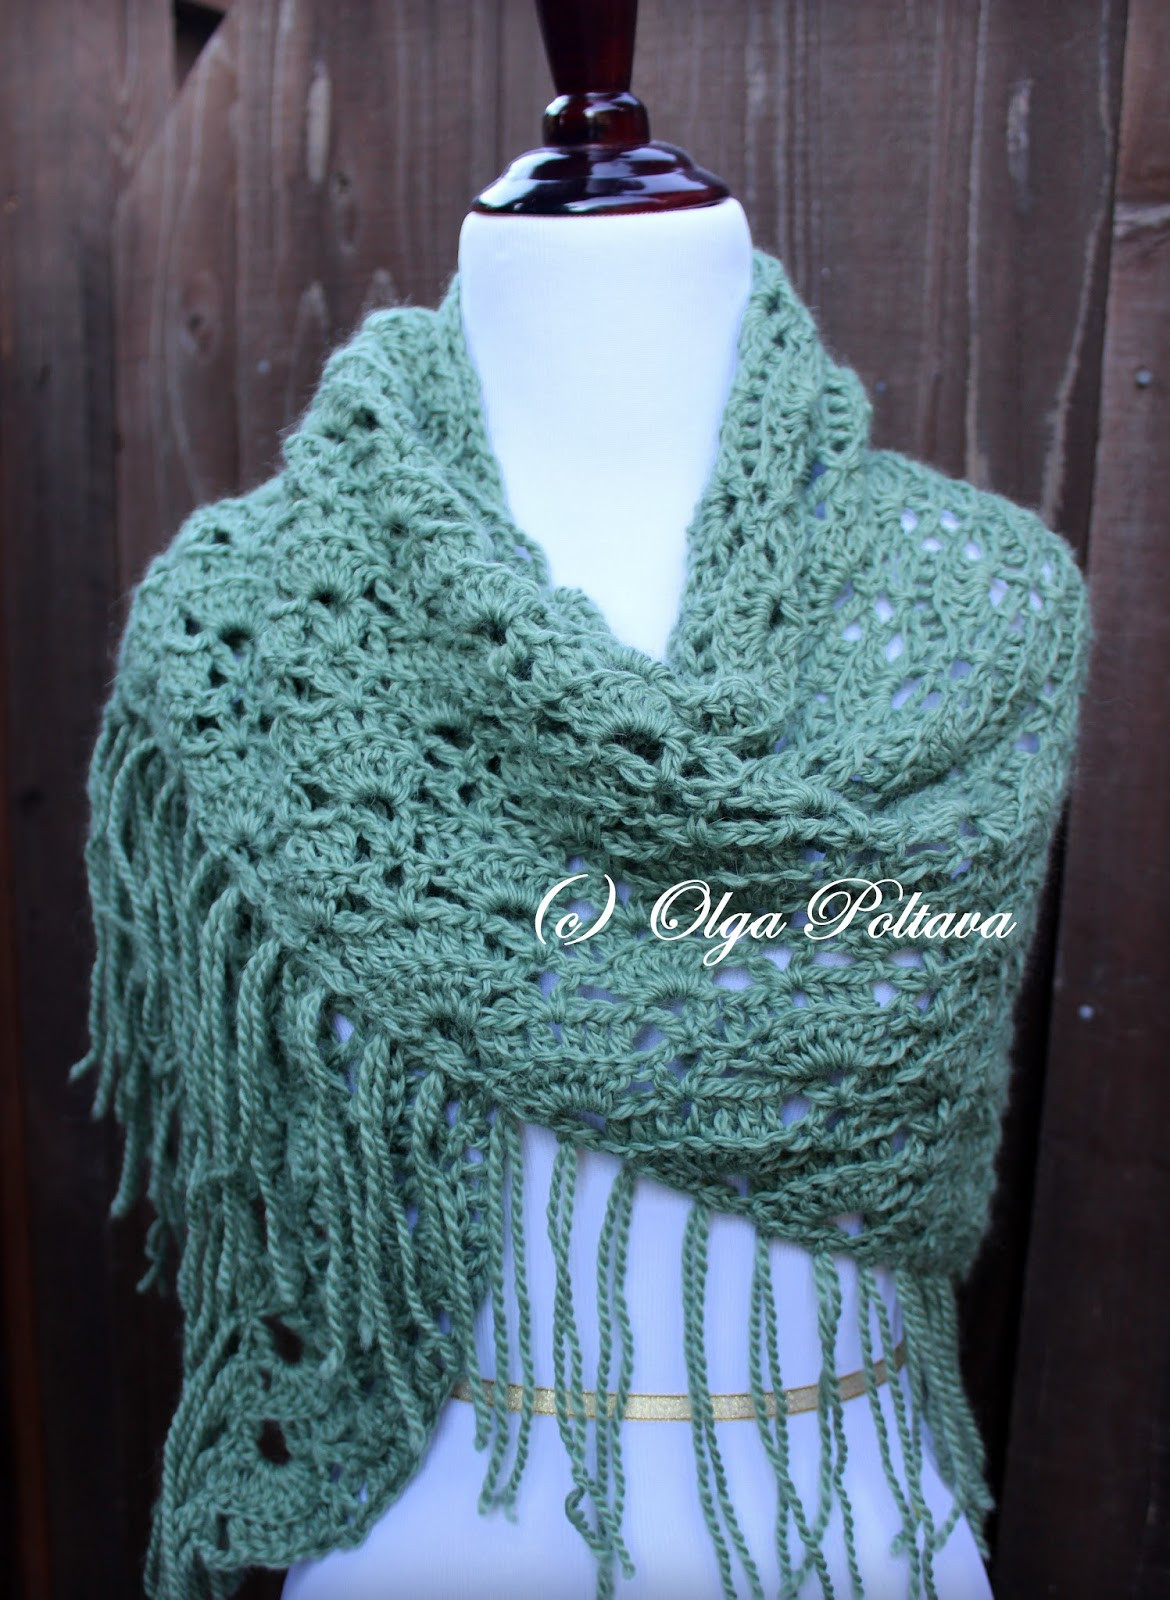 Scarf Crochet New Lacy Crochet Baby Alpaca Wool Autumn Scarf Of Innovative 47 Pictures Scarf Crochet